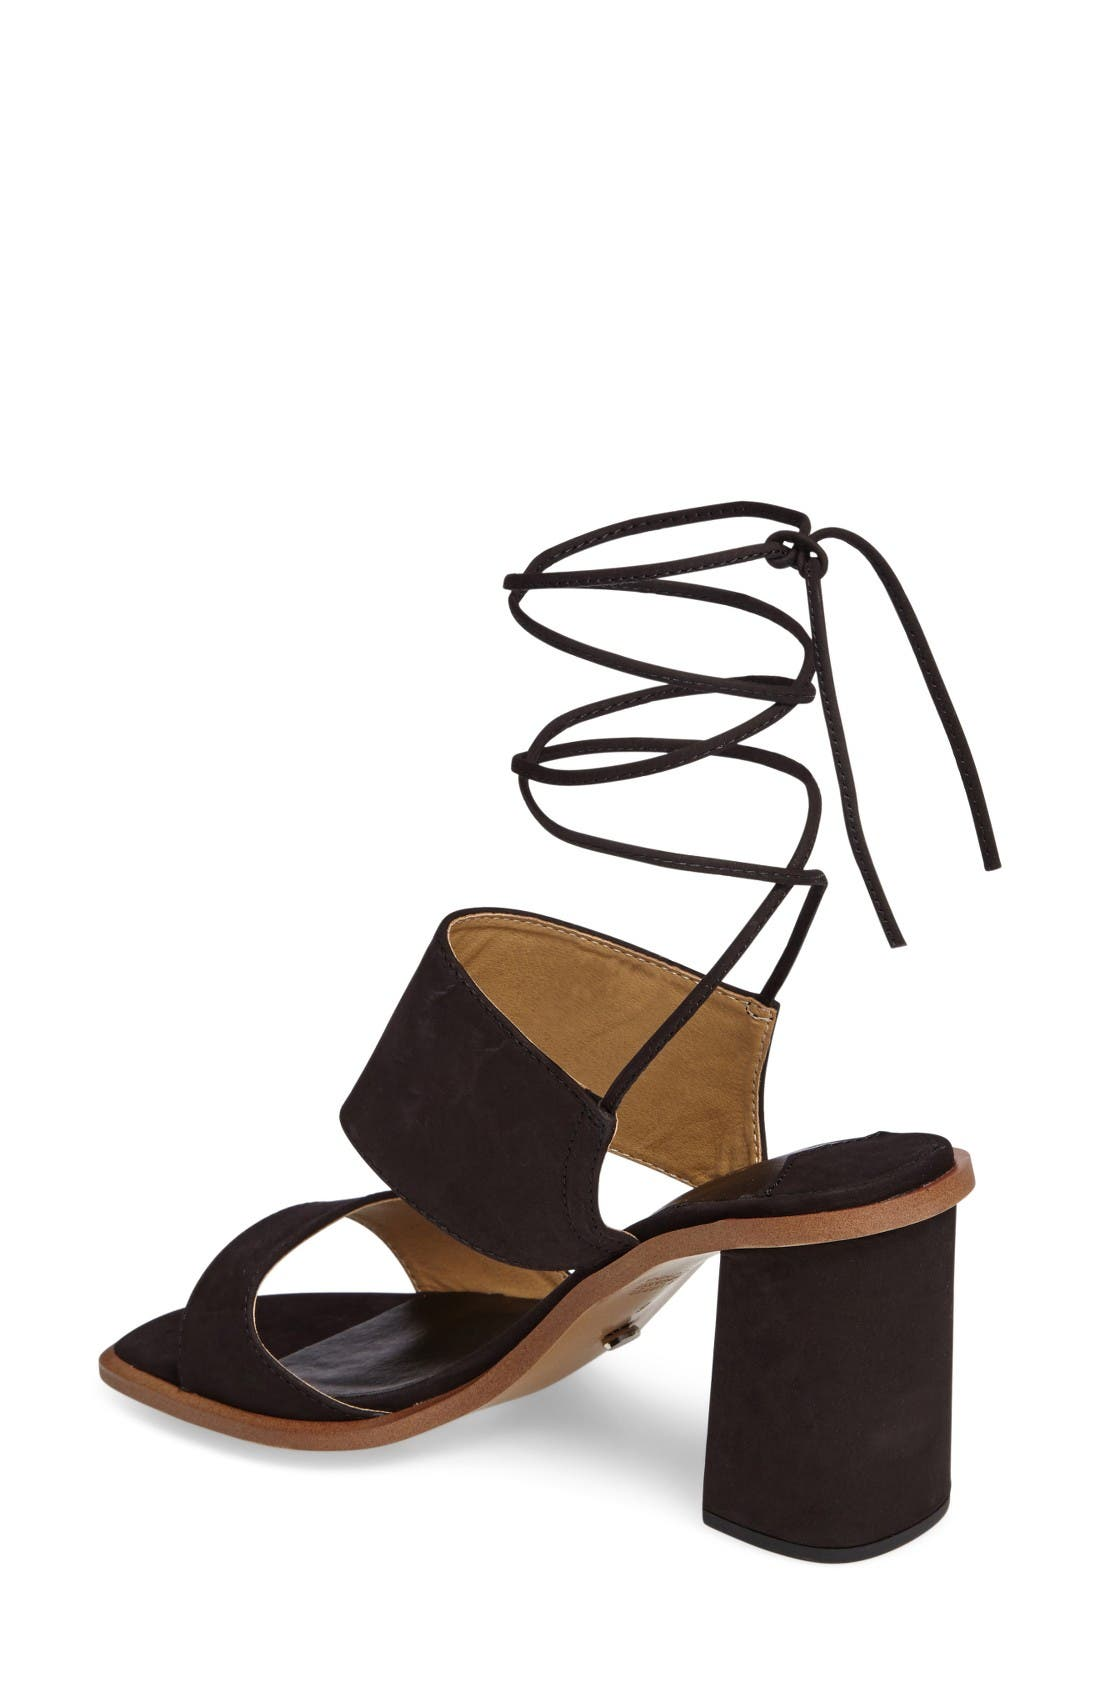 Alternate Image 2  - Tony Bianco Cuoco Ankle Strap Sandal (Women)